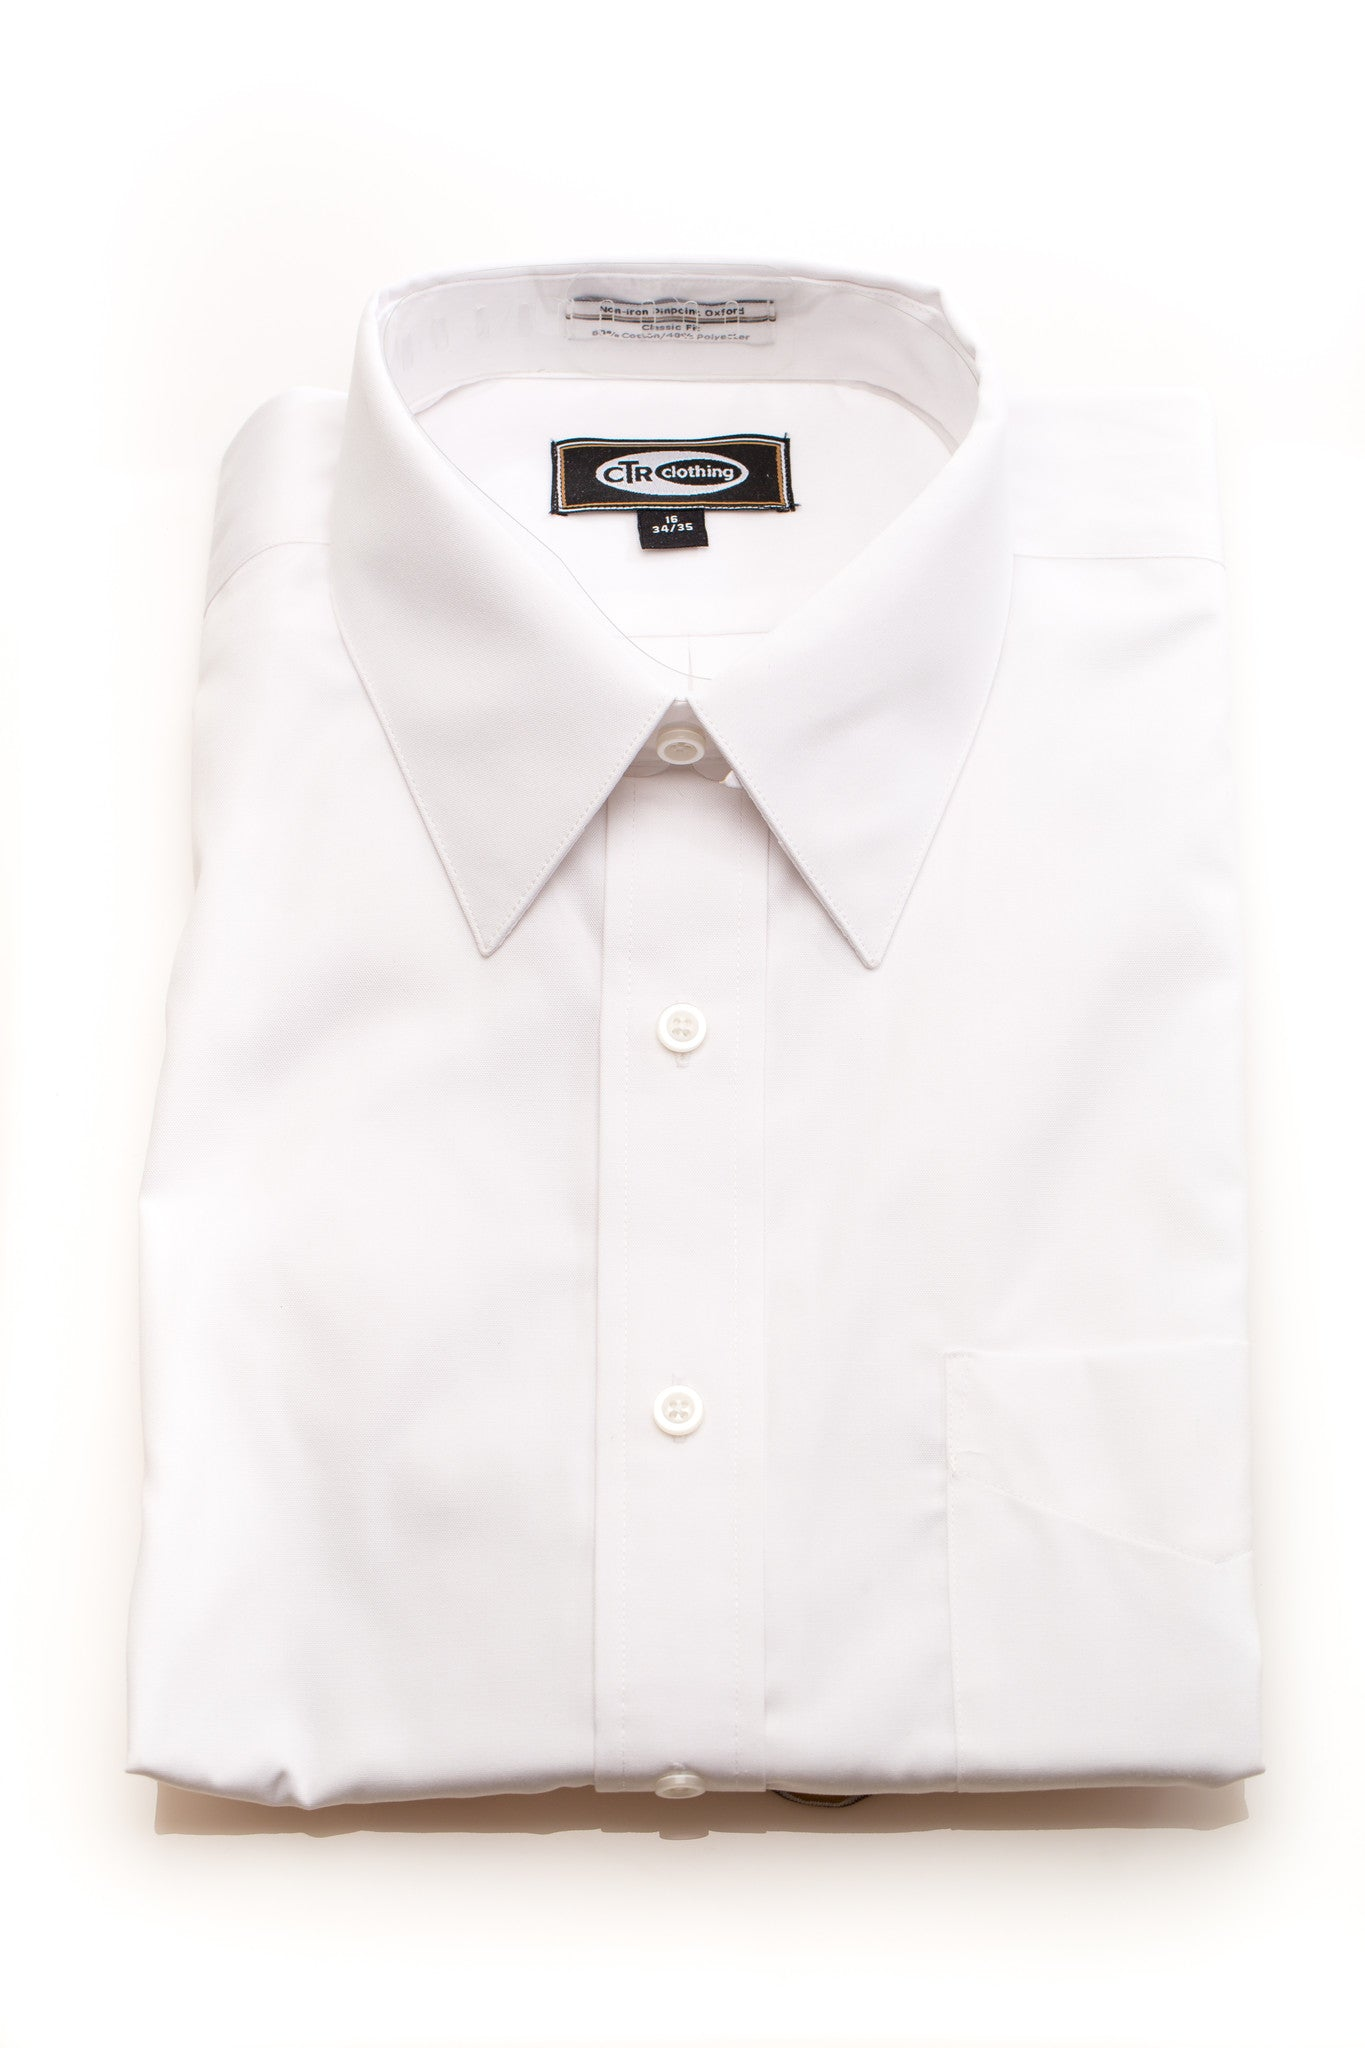 Classic Fit Non-Iron Short Sleeve Dress Shirt by CTR Clothing - Kater Shop